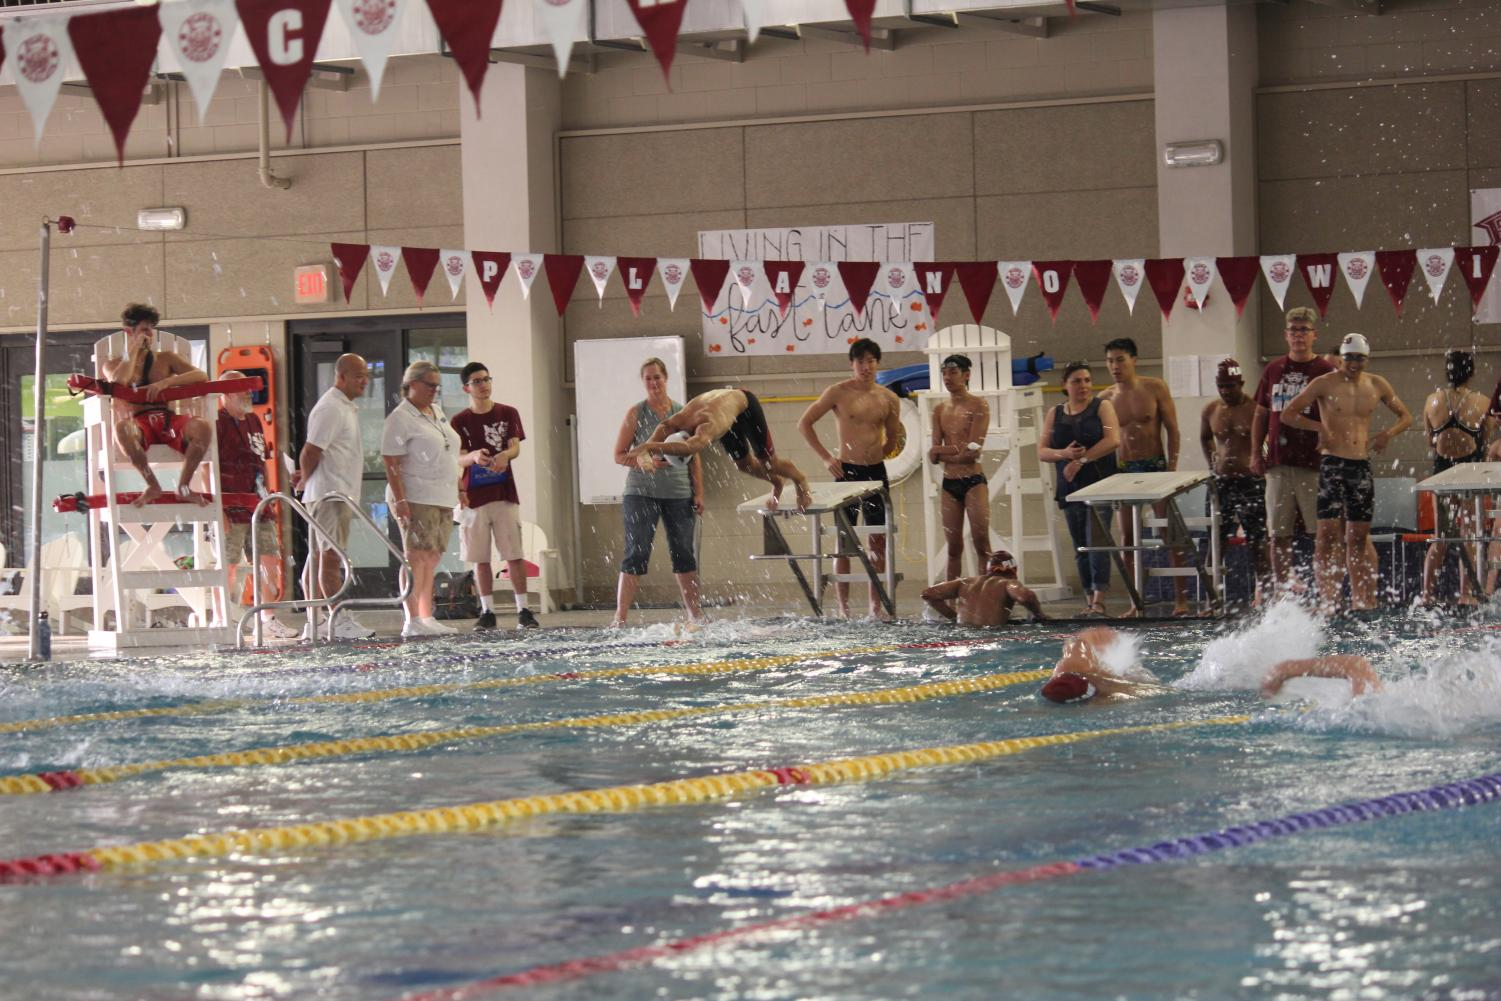 Swimmers launching off diving board in race during intersquad meet.